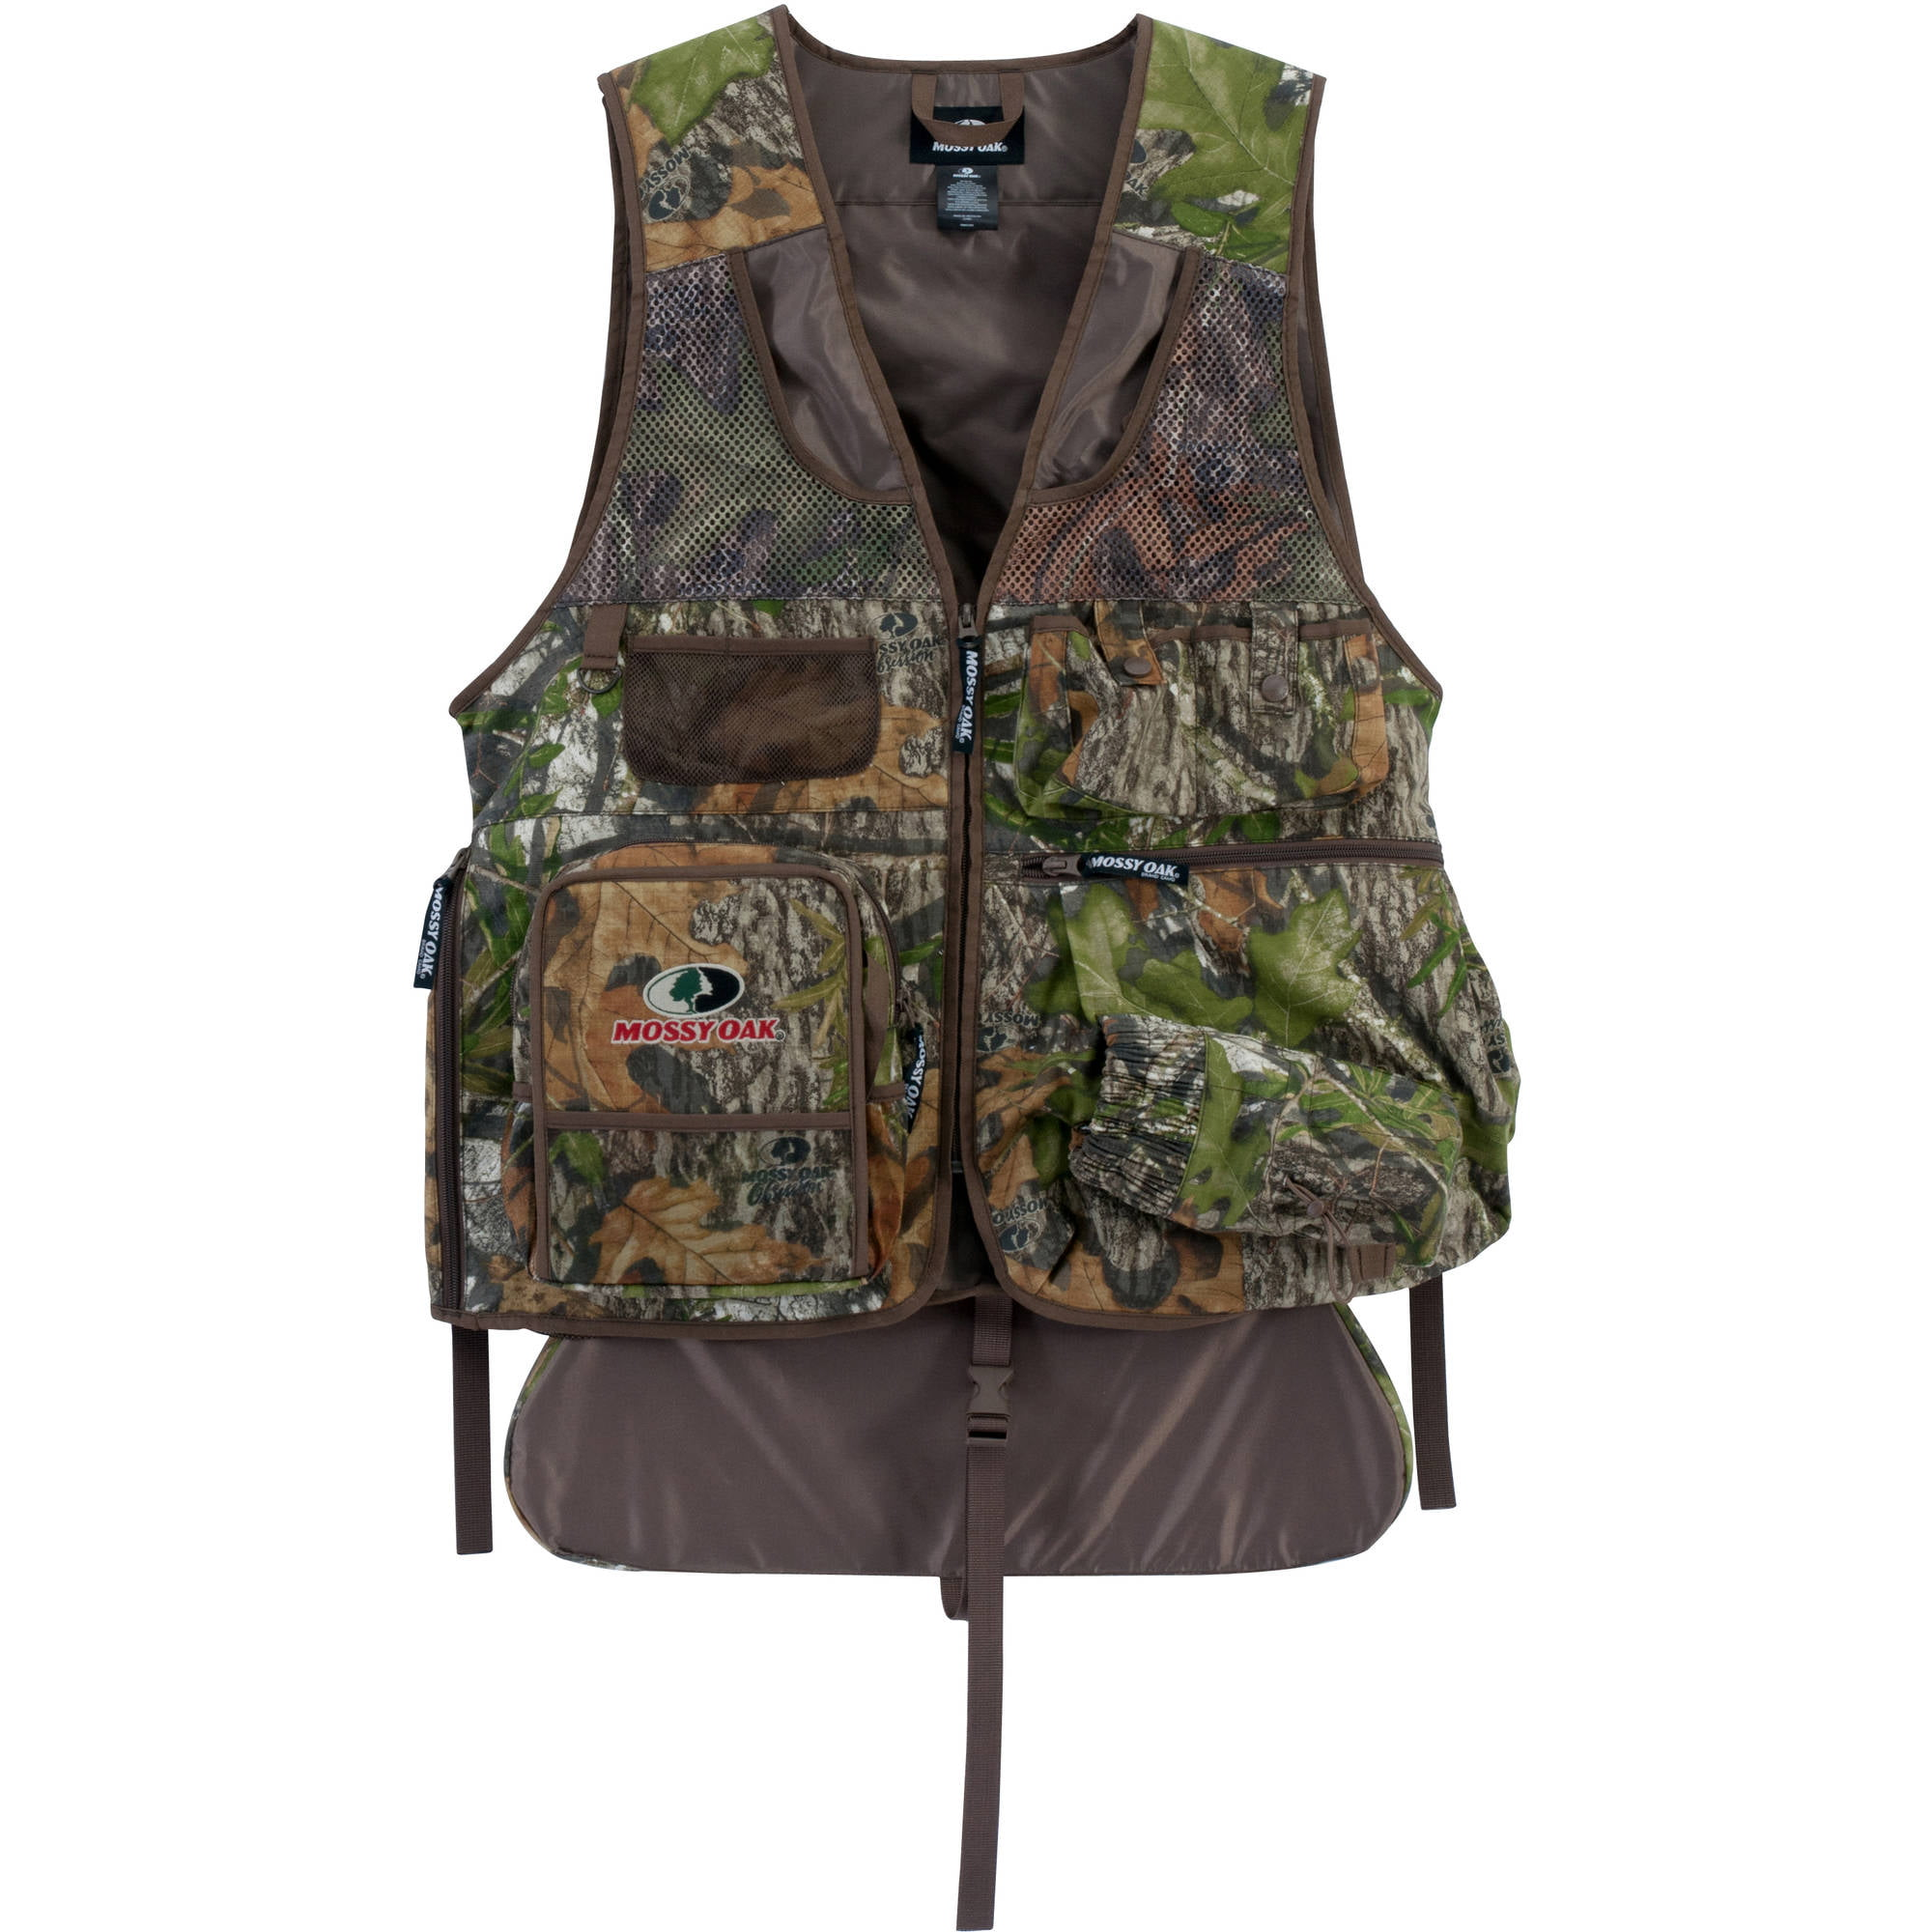 Men's Camo Turkey Vest with Cushioned Seat by Mossy Oak